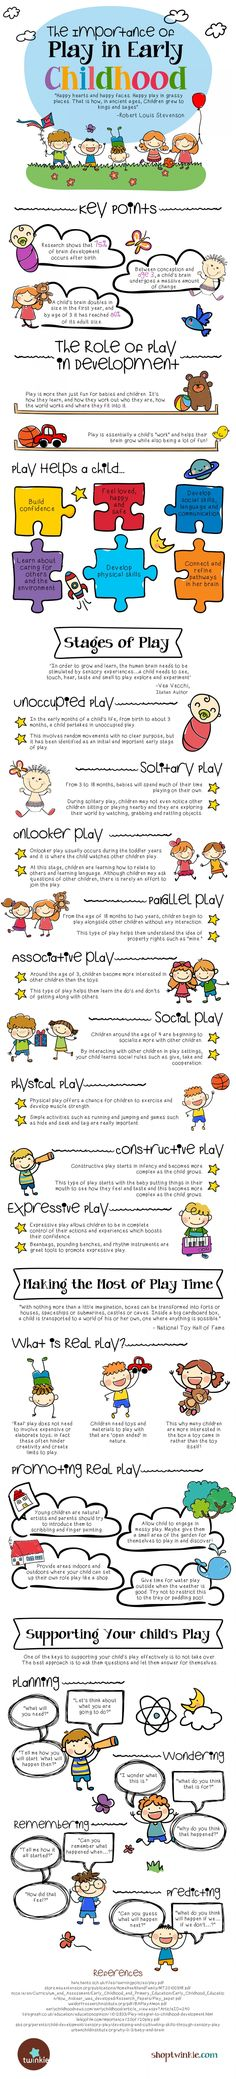 Facts About the Importance of Play